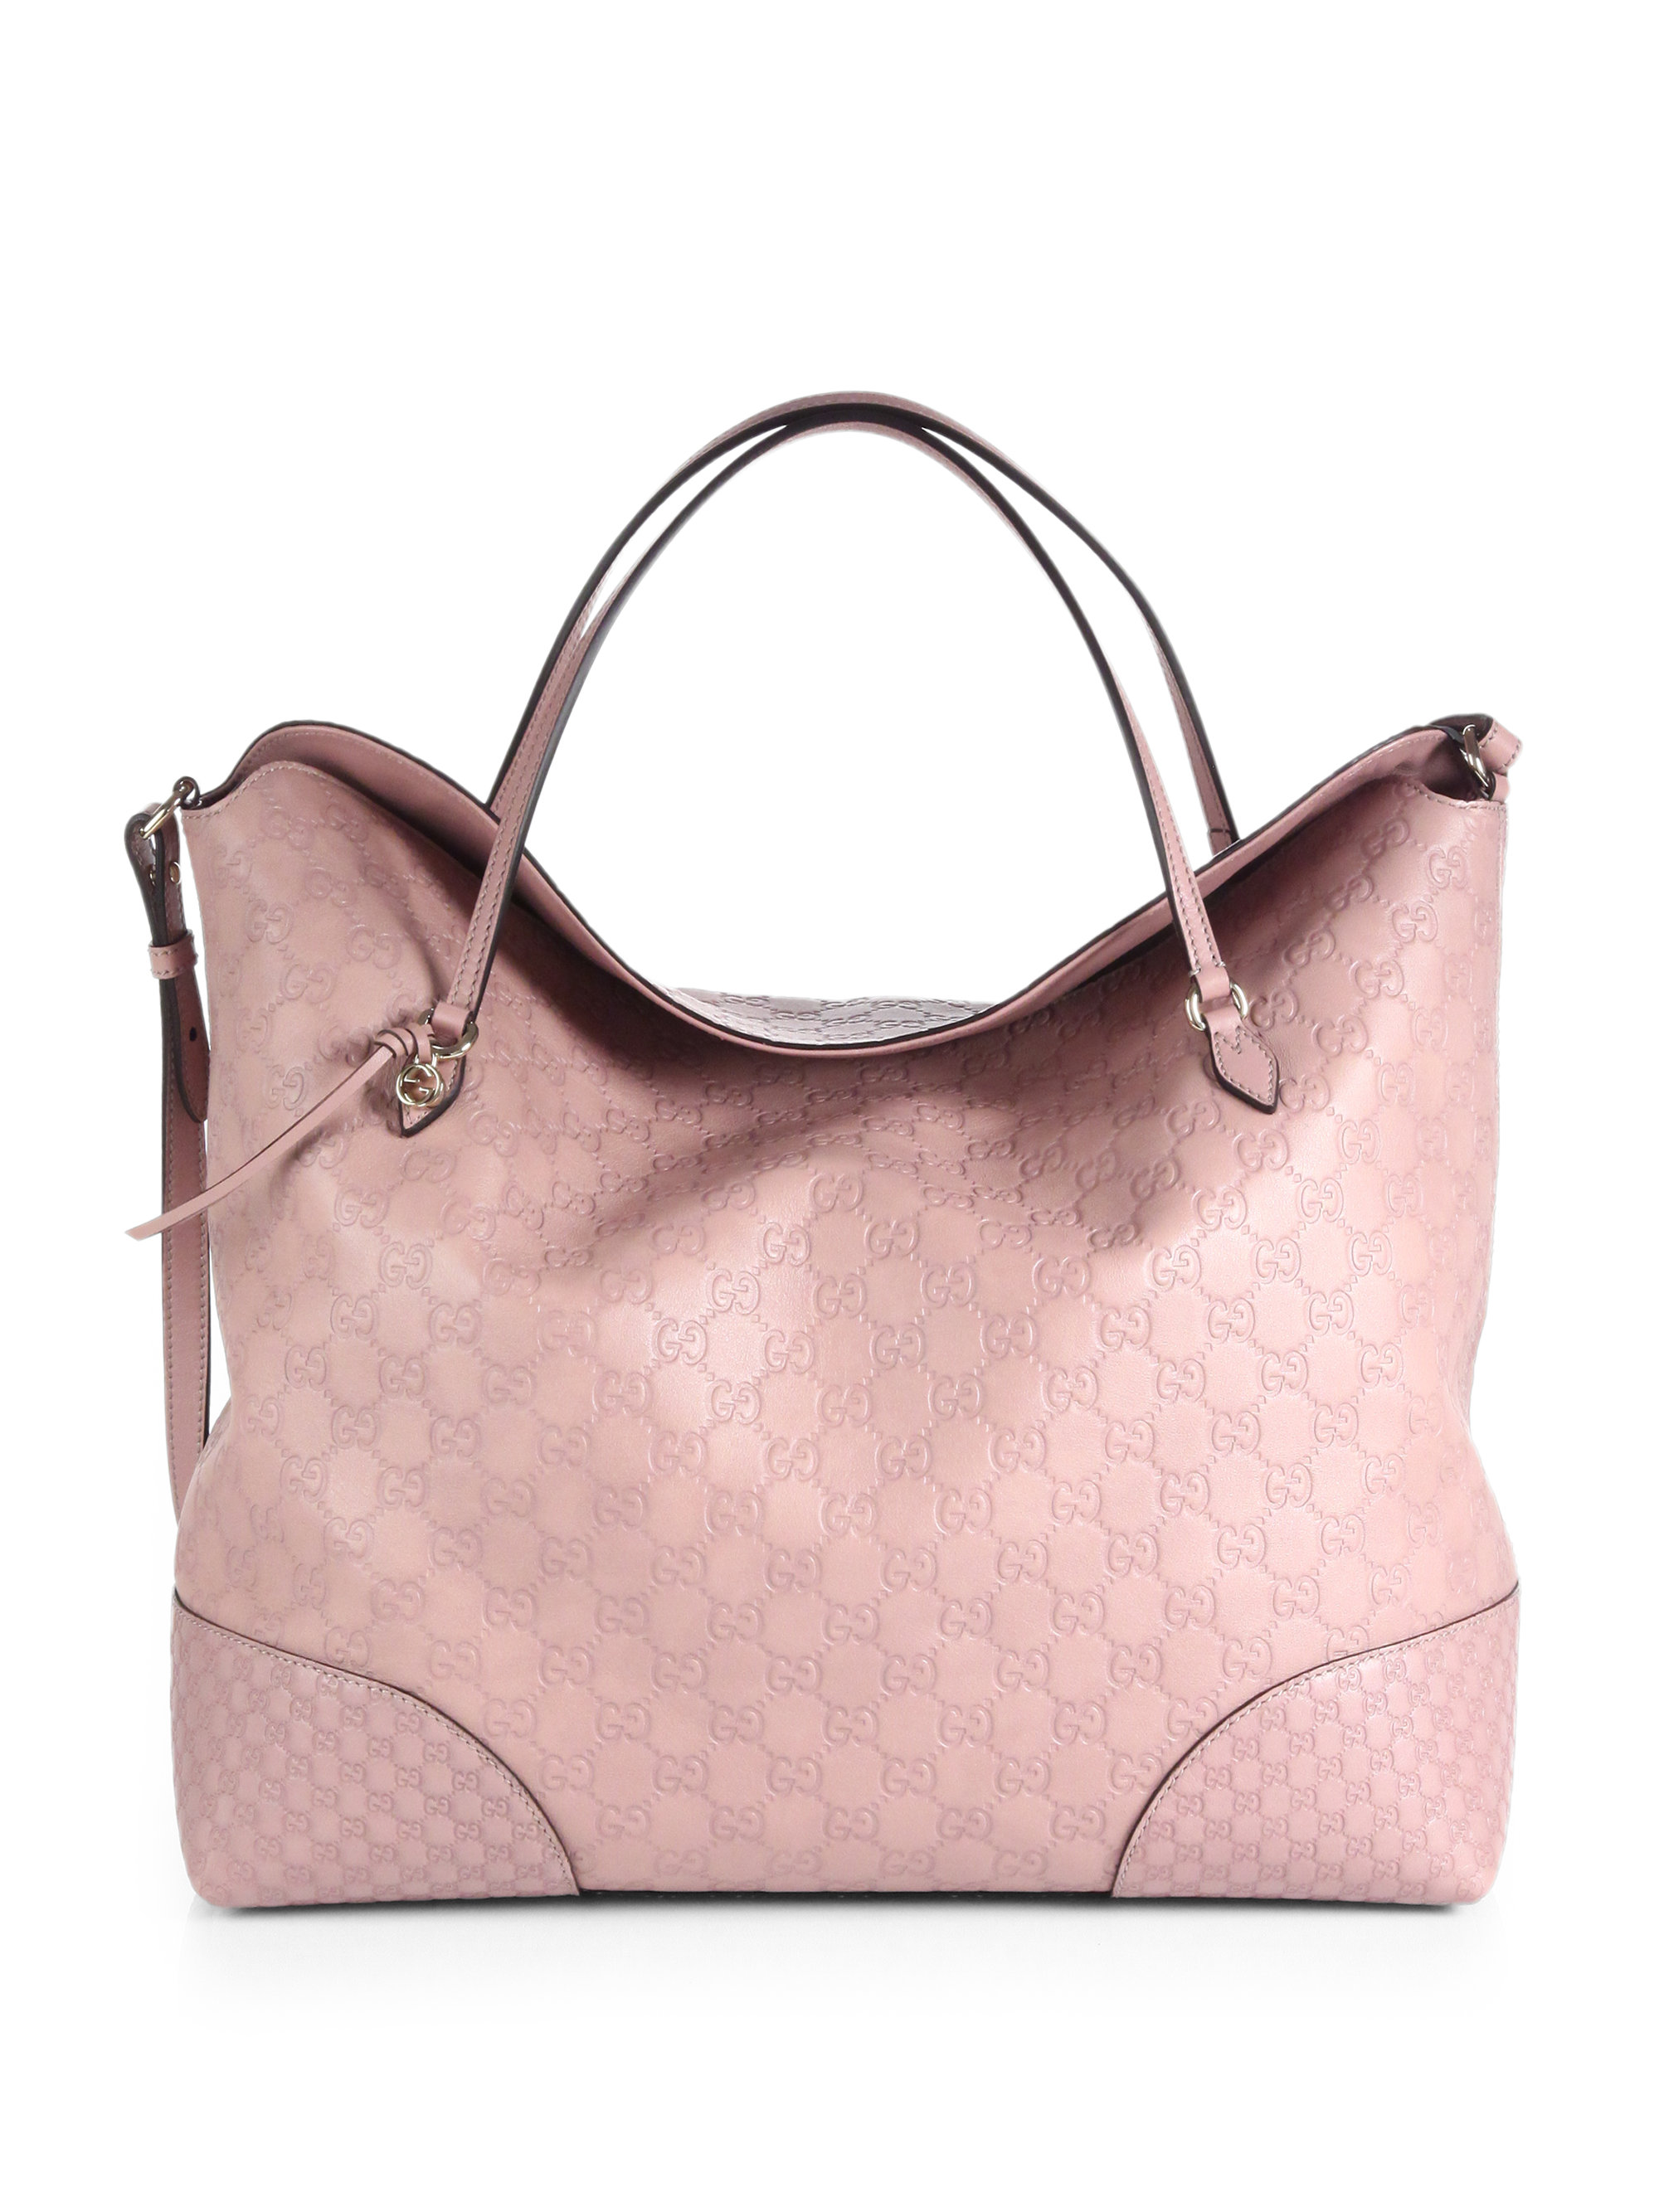 1e4f609f7e2 Lyst - Gucci Bree Ssima Leather Tote in Pink